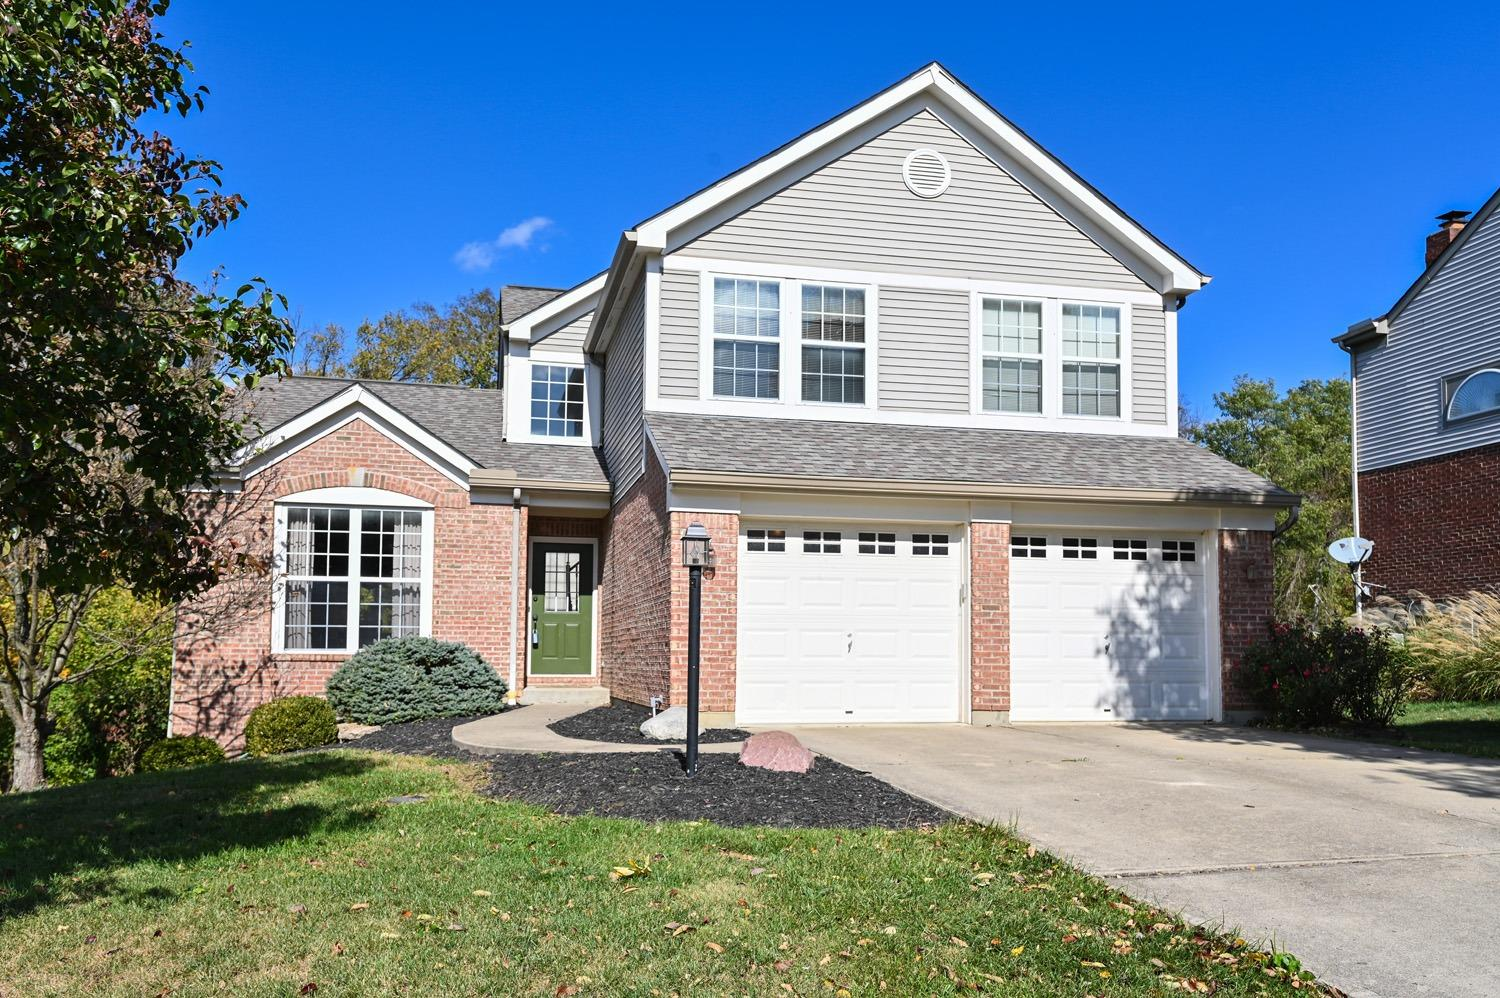 722 Rosewynne Ct Cleves, OH